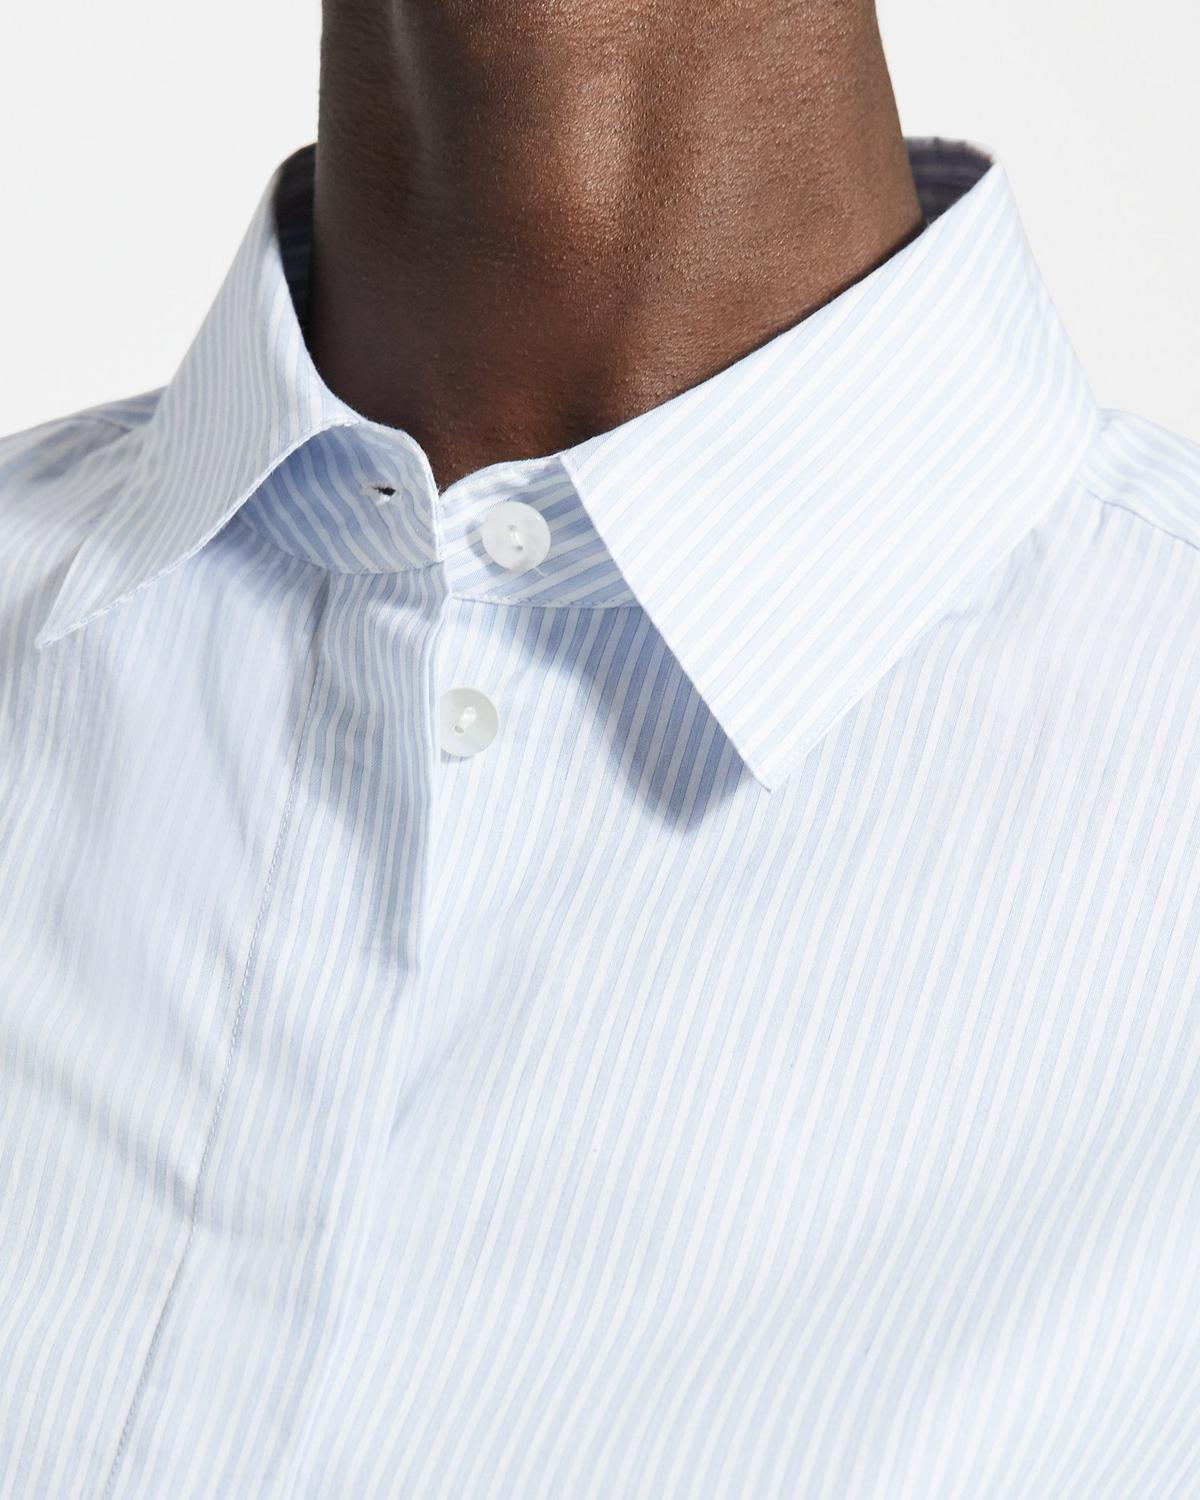 Striped Classic Menswear Shirt